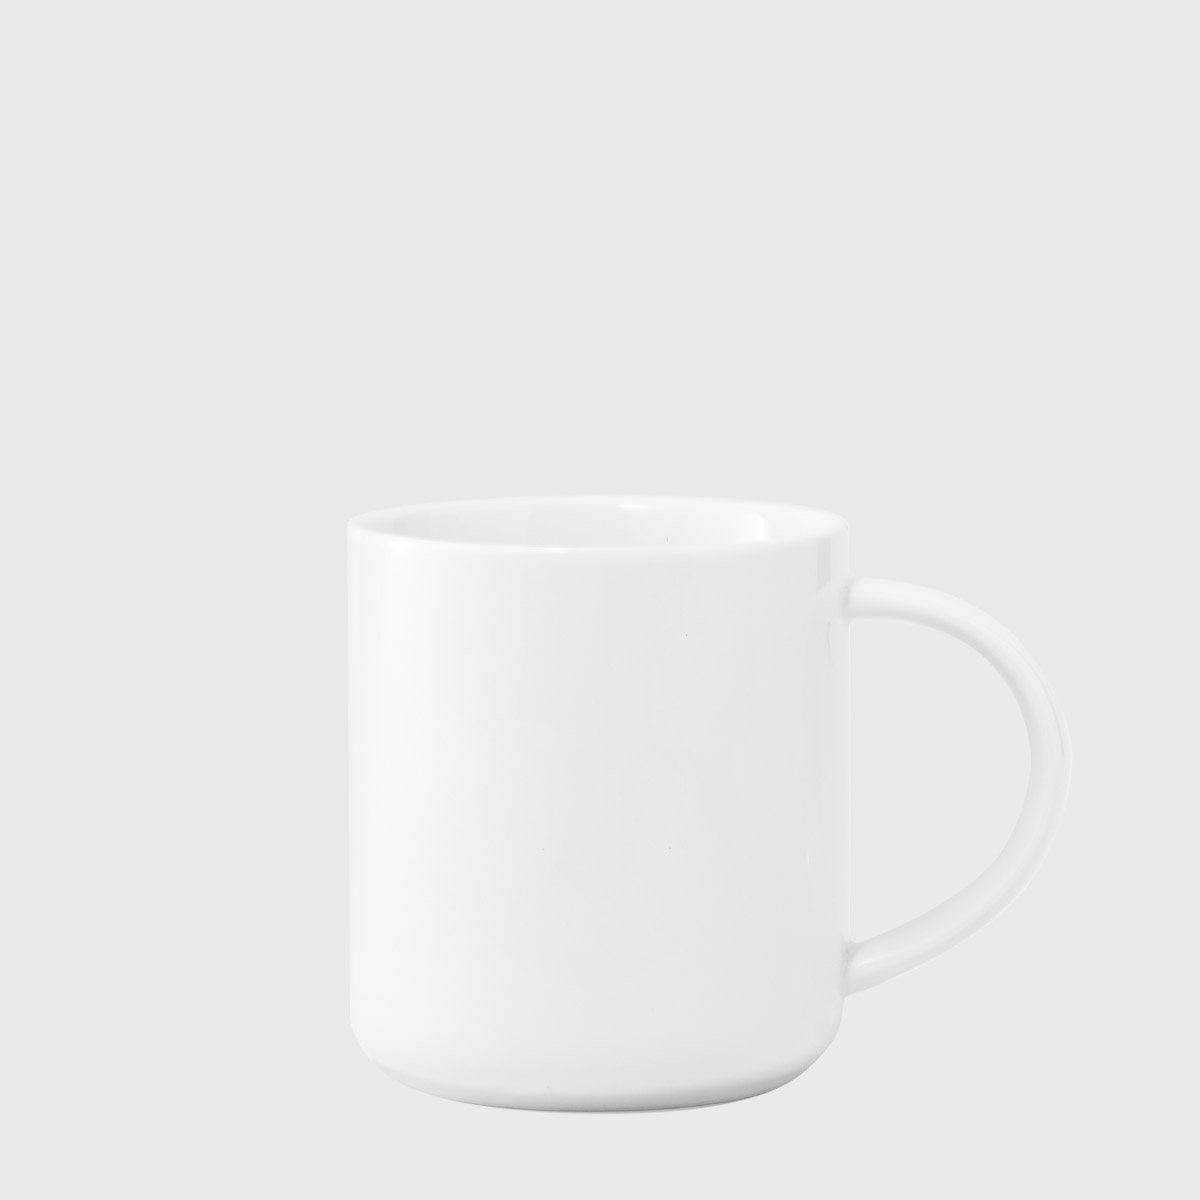 Public Goods 15.5 oz Ceramic Mugs Set of 4 (Case of 3)